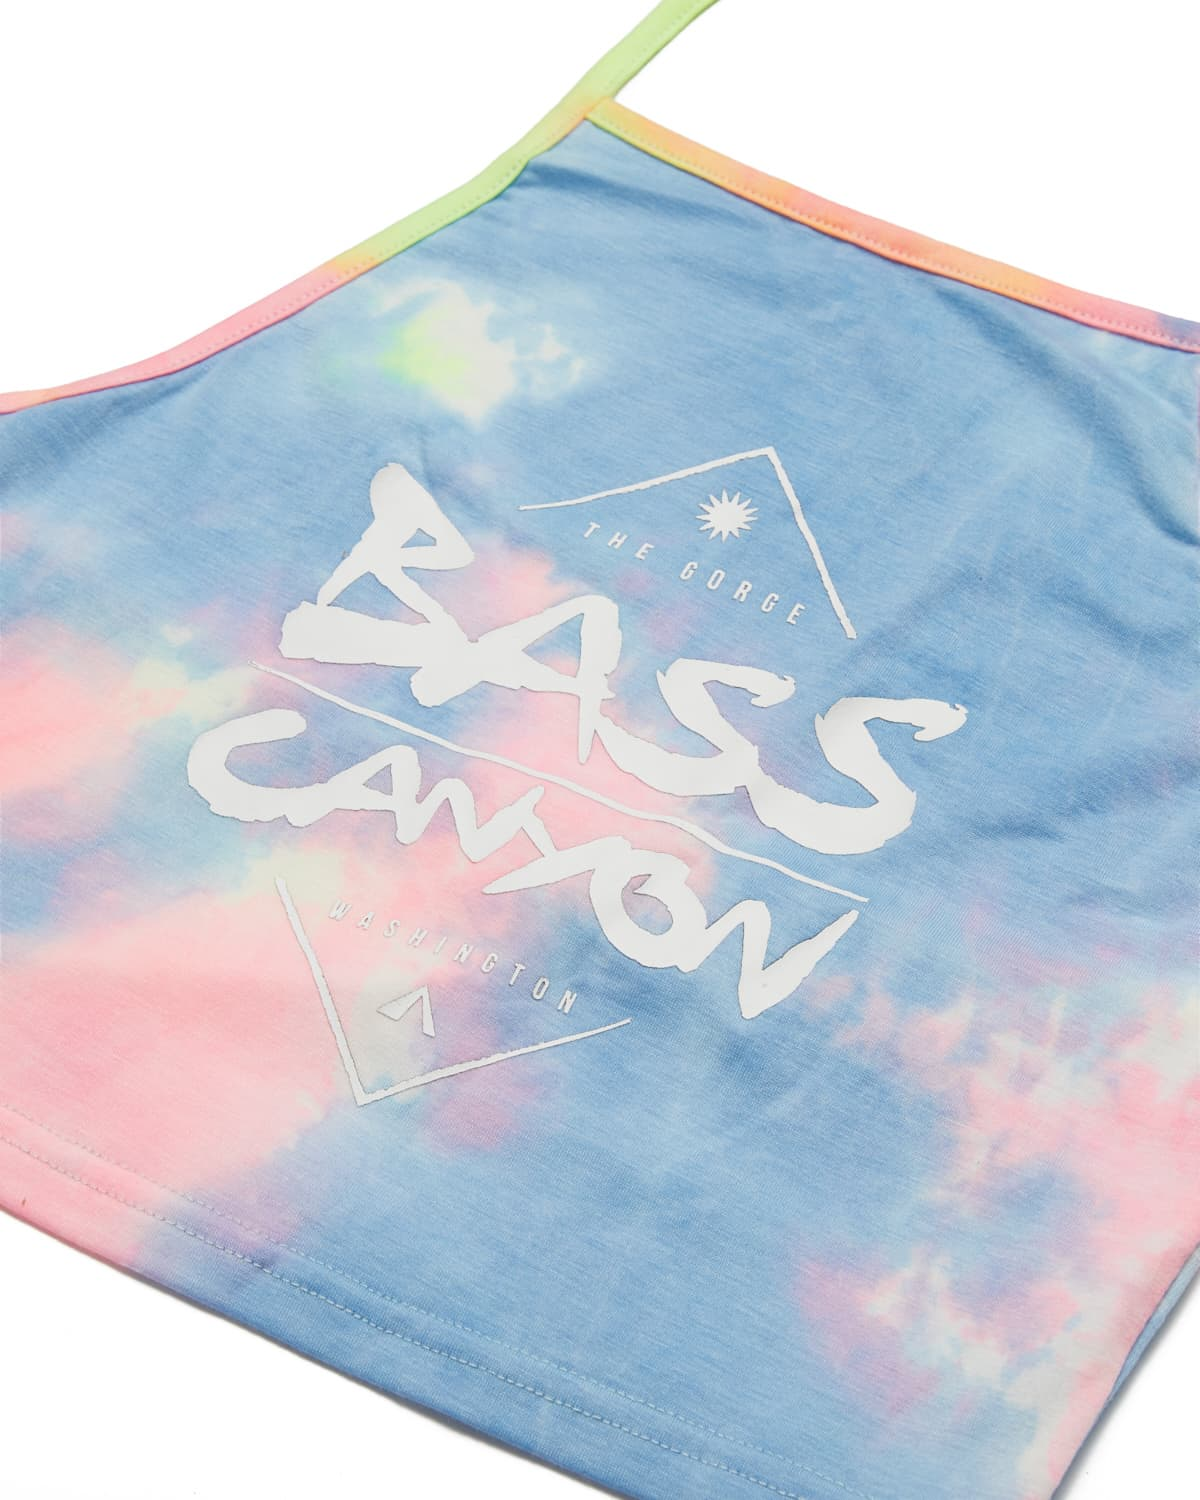 Bass Canyon Tie Dye Halter Top - Rainbow